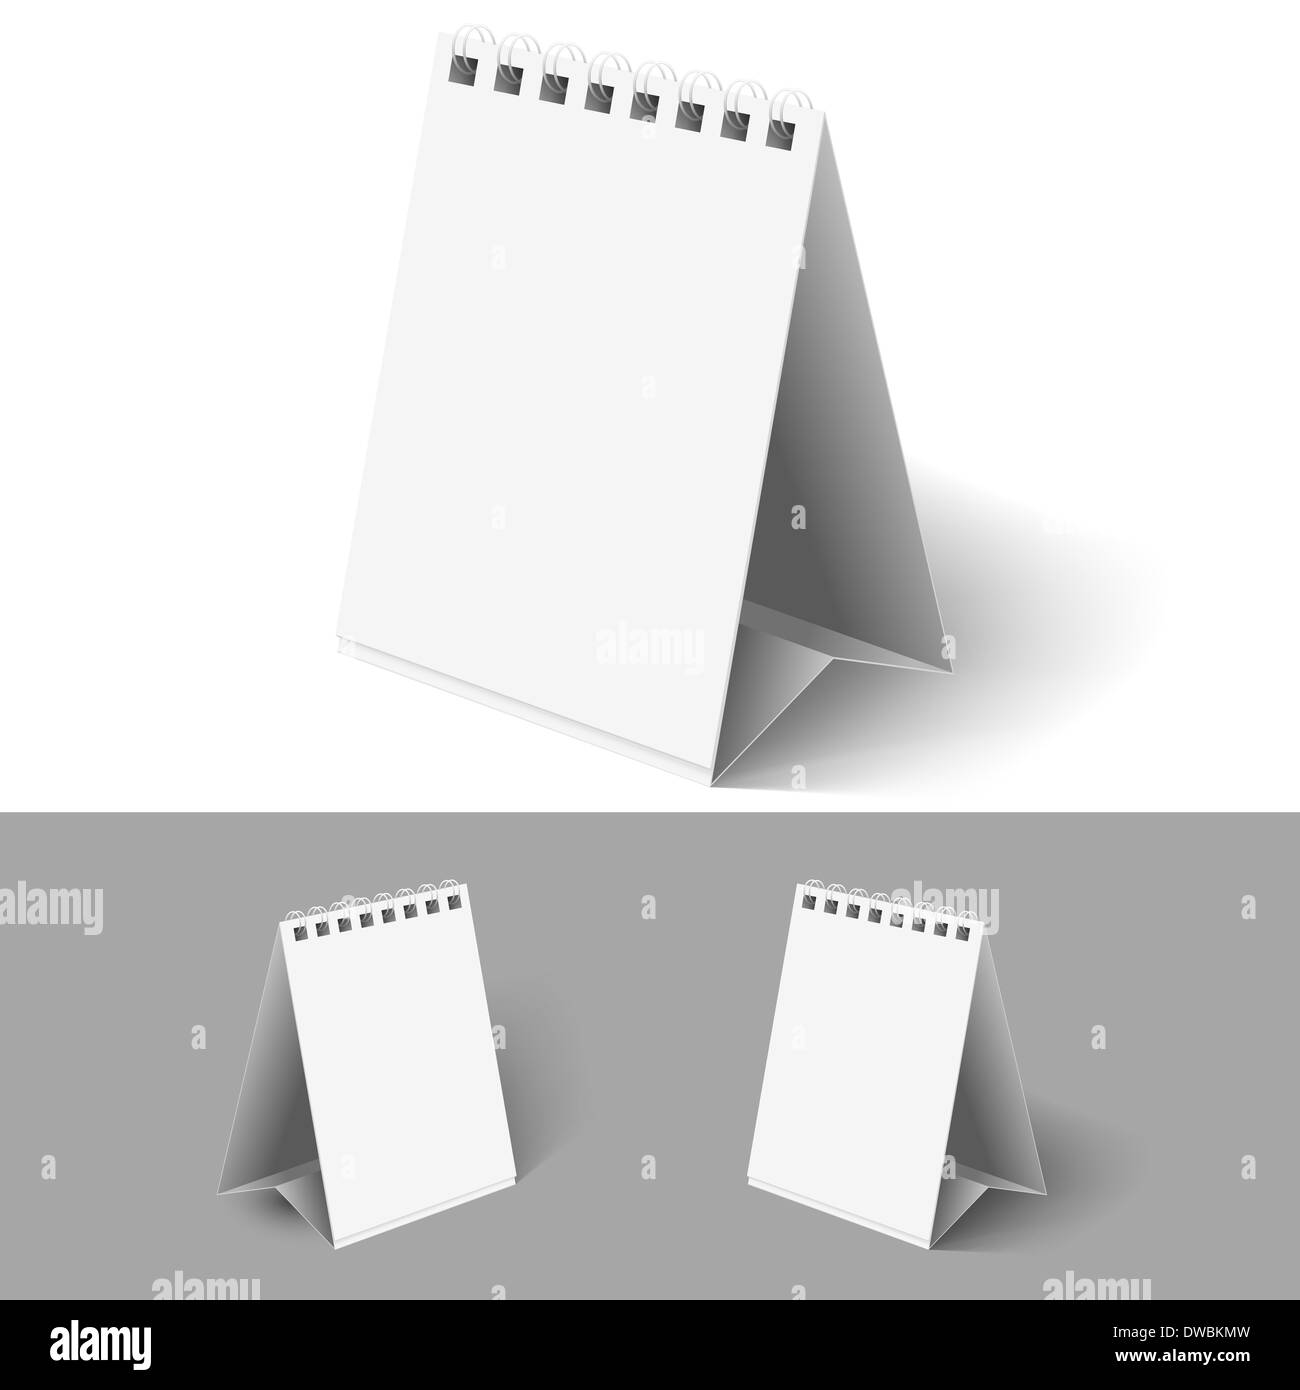 hight resolution of blank table flip calendars on white and grey backgrounds